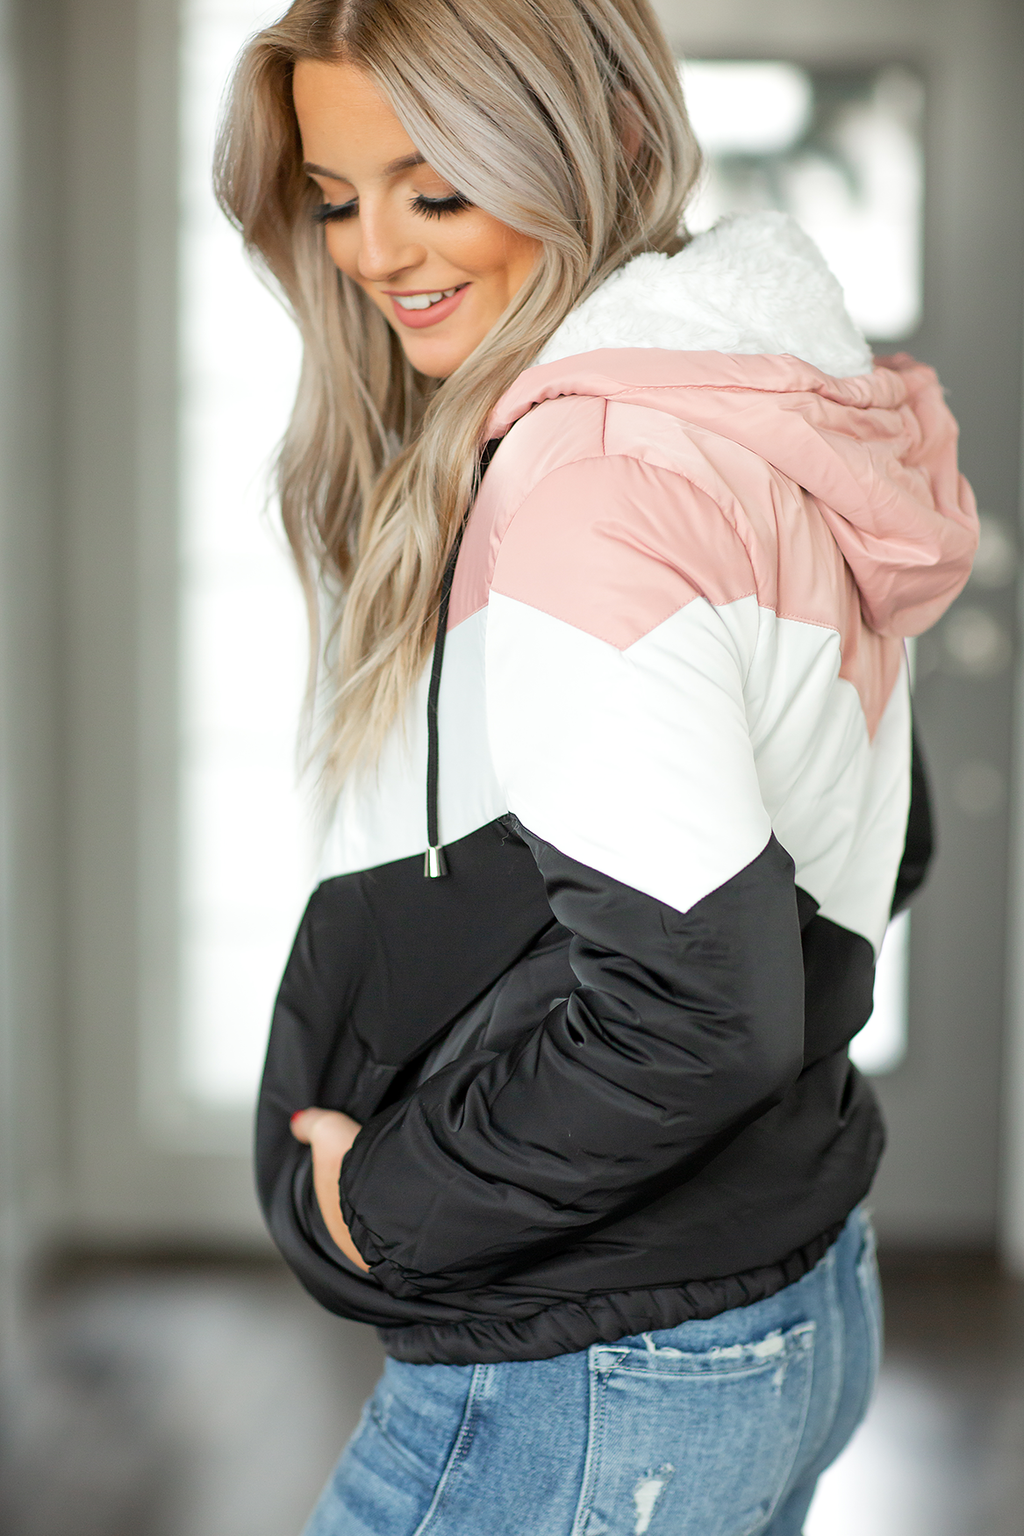 Ready for Action Puffer Jacket in Black, White and Pink